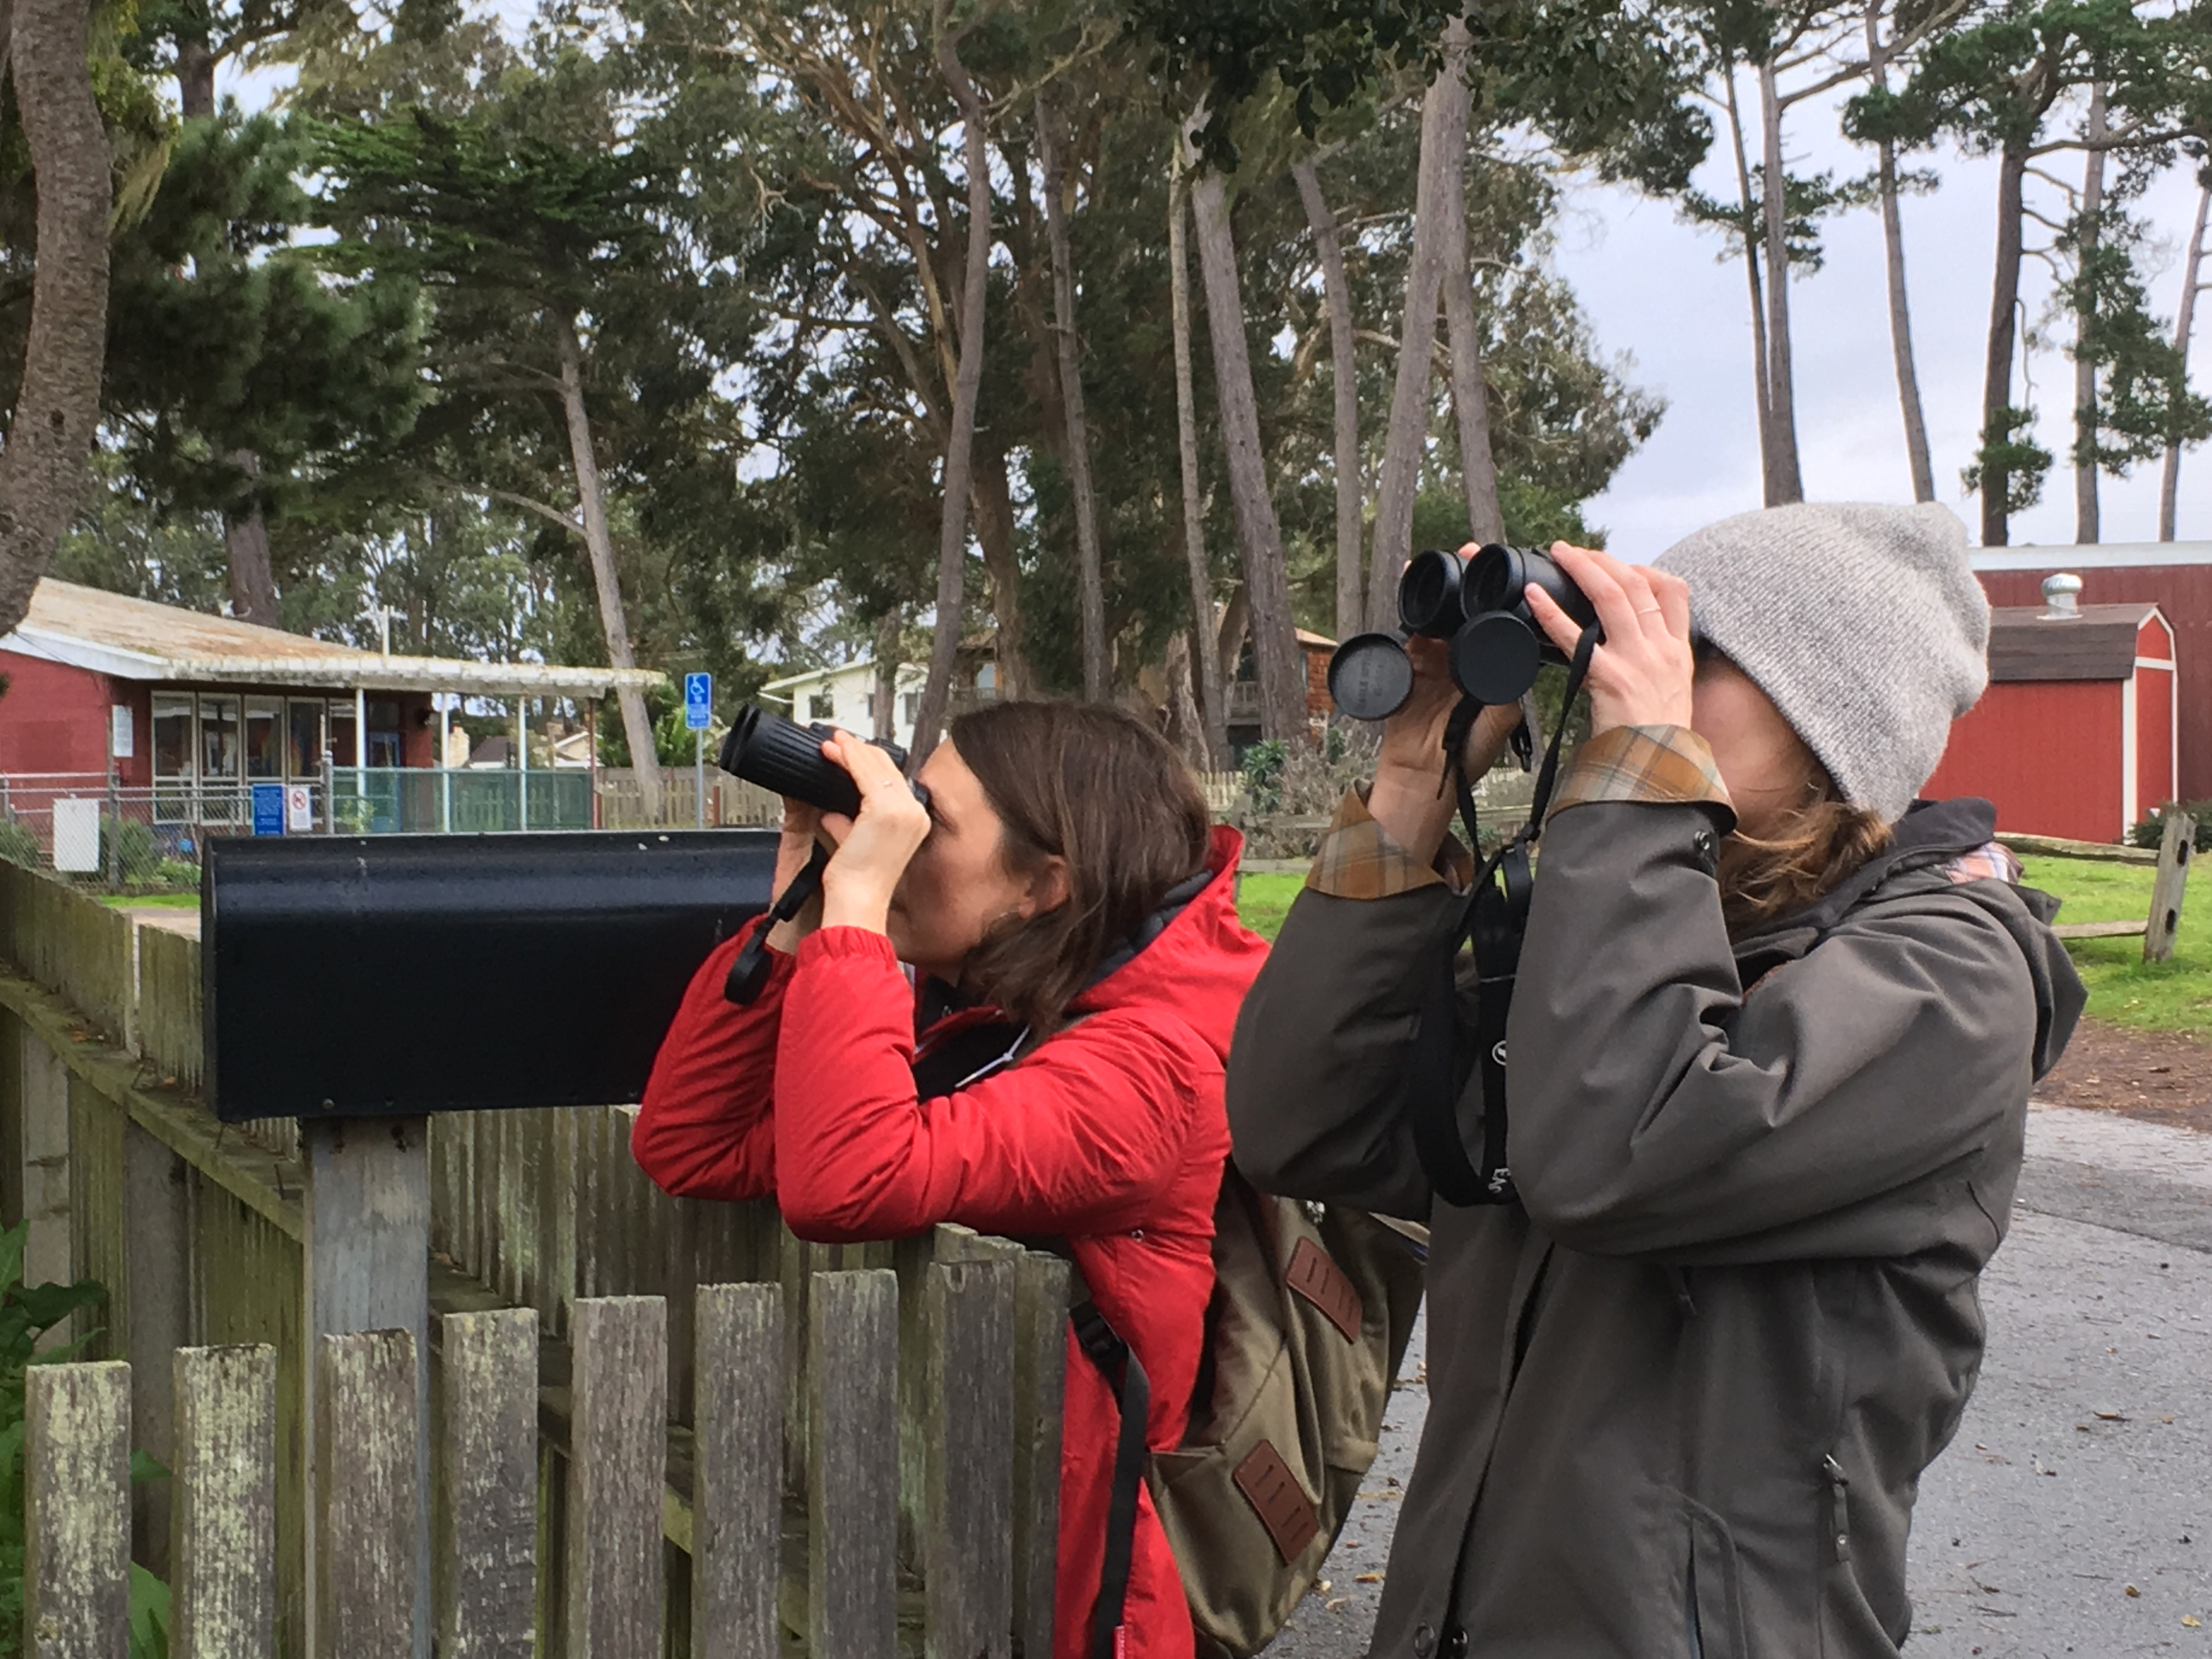 Two women in coats with warm hats peer through binoculars, while leaning on a short wooden fence.